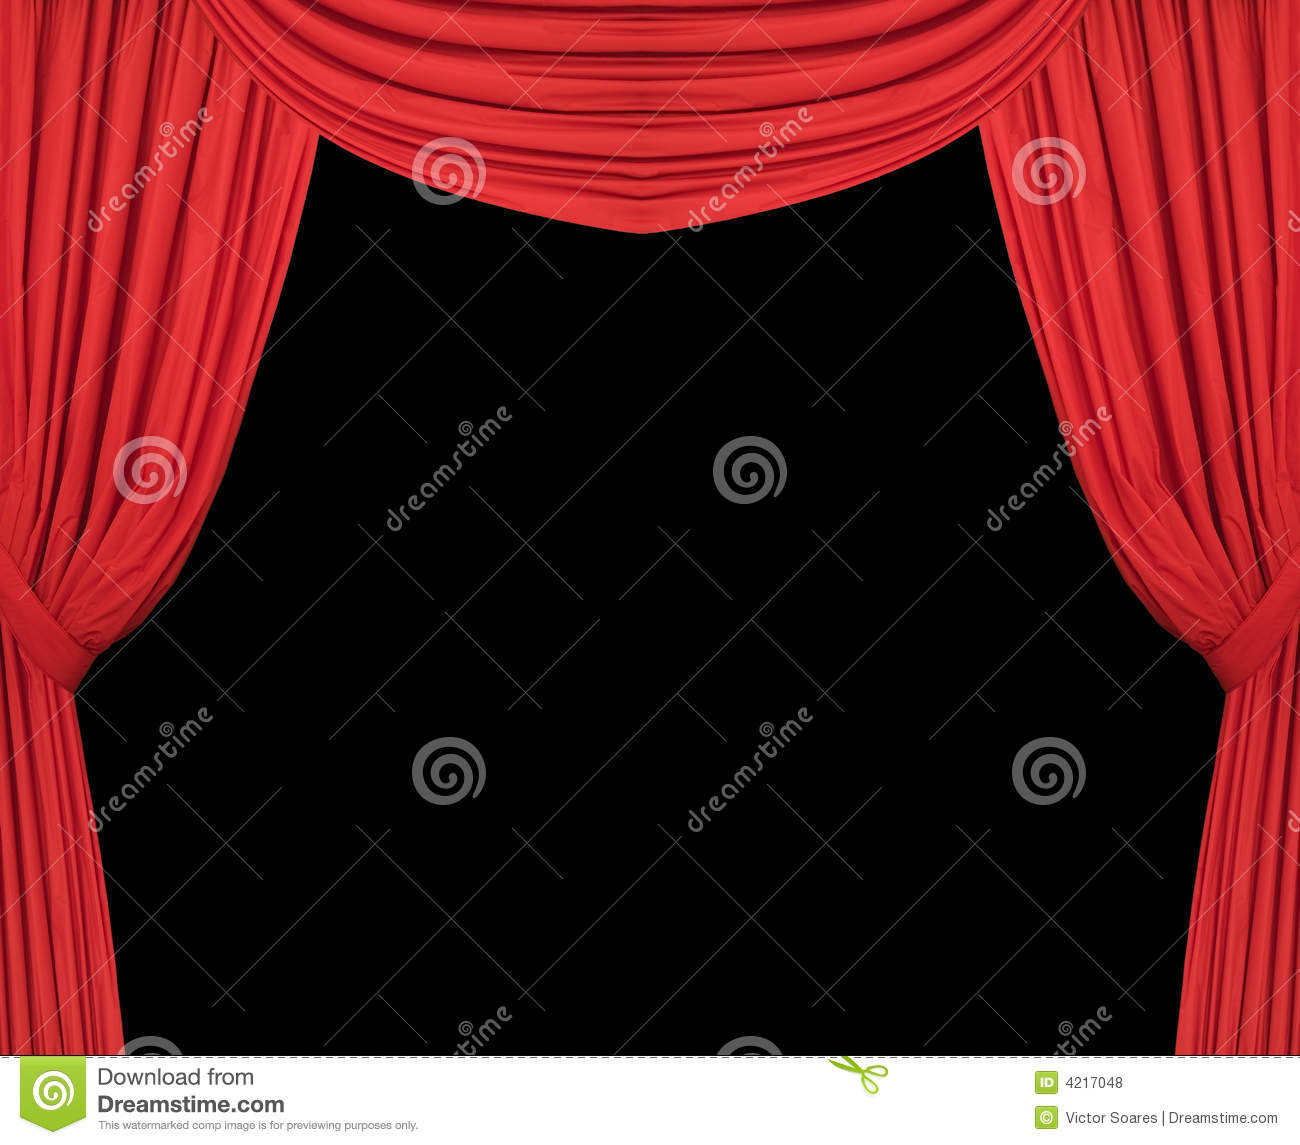 Closed theater curtains - Royalty Free Stock Photo